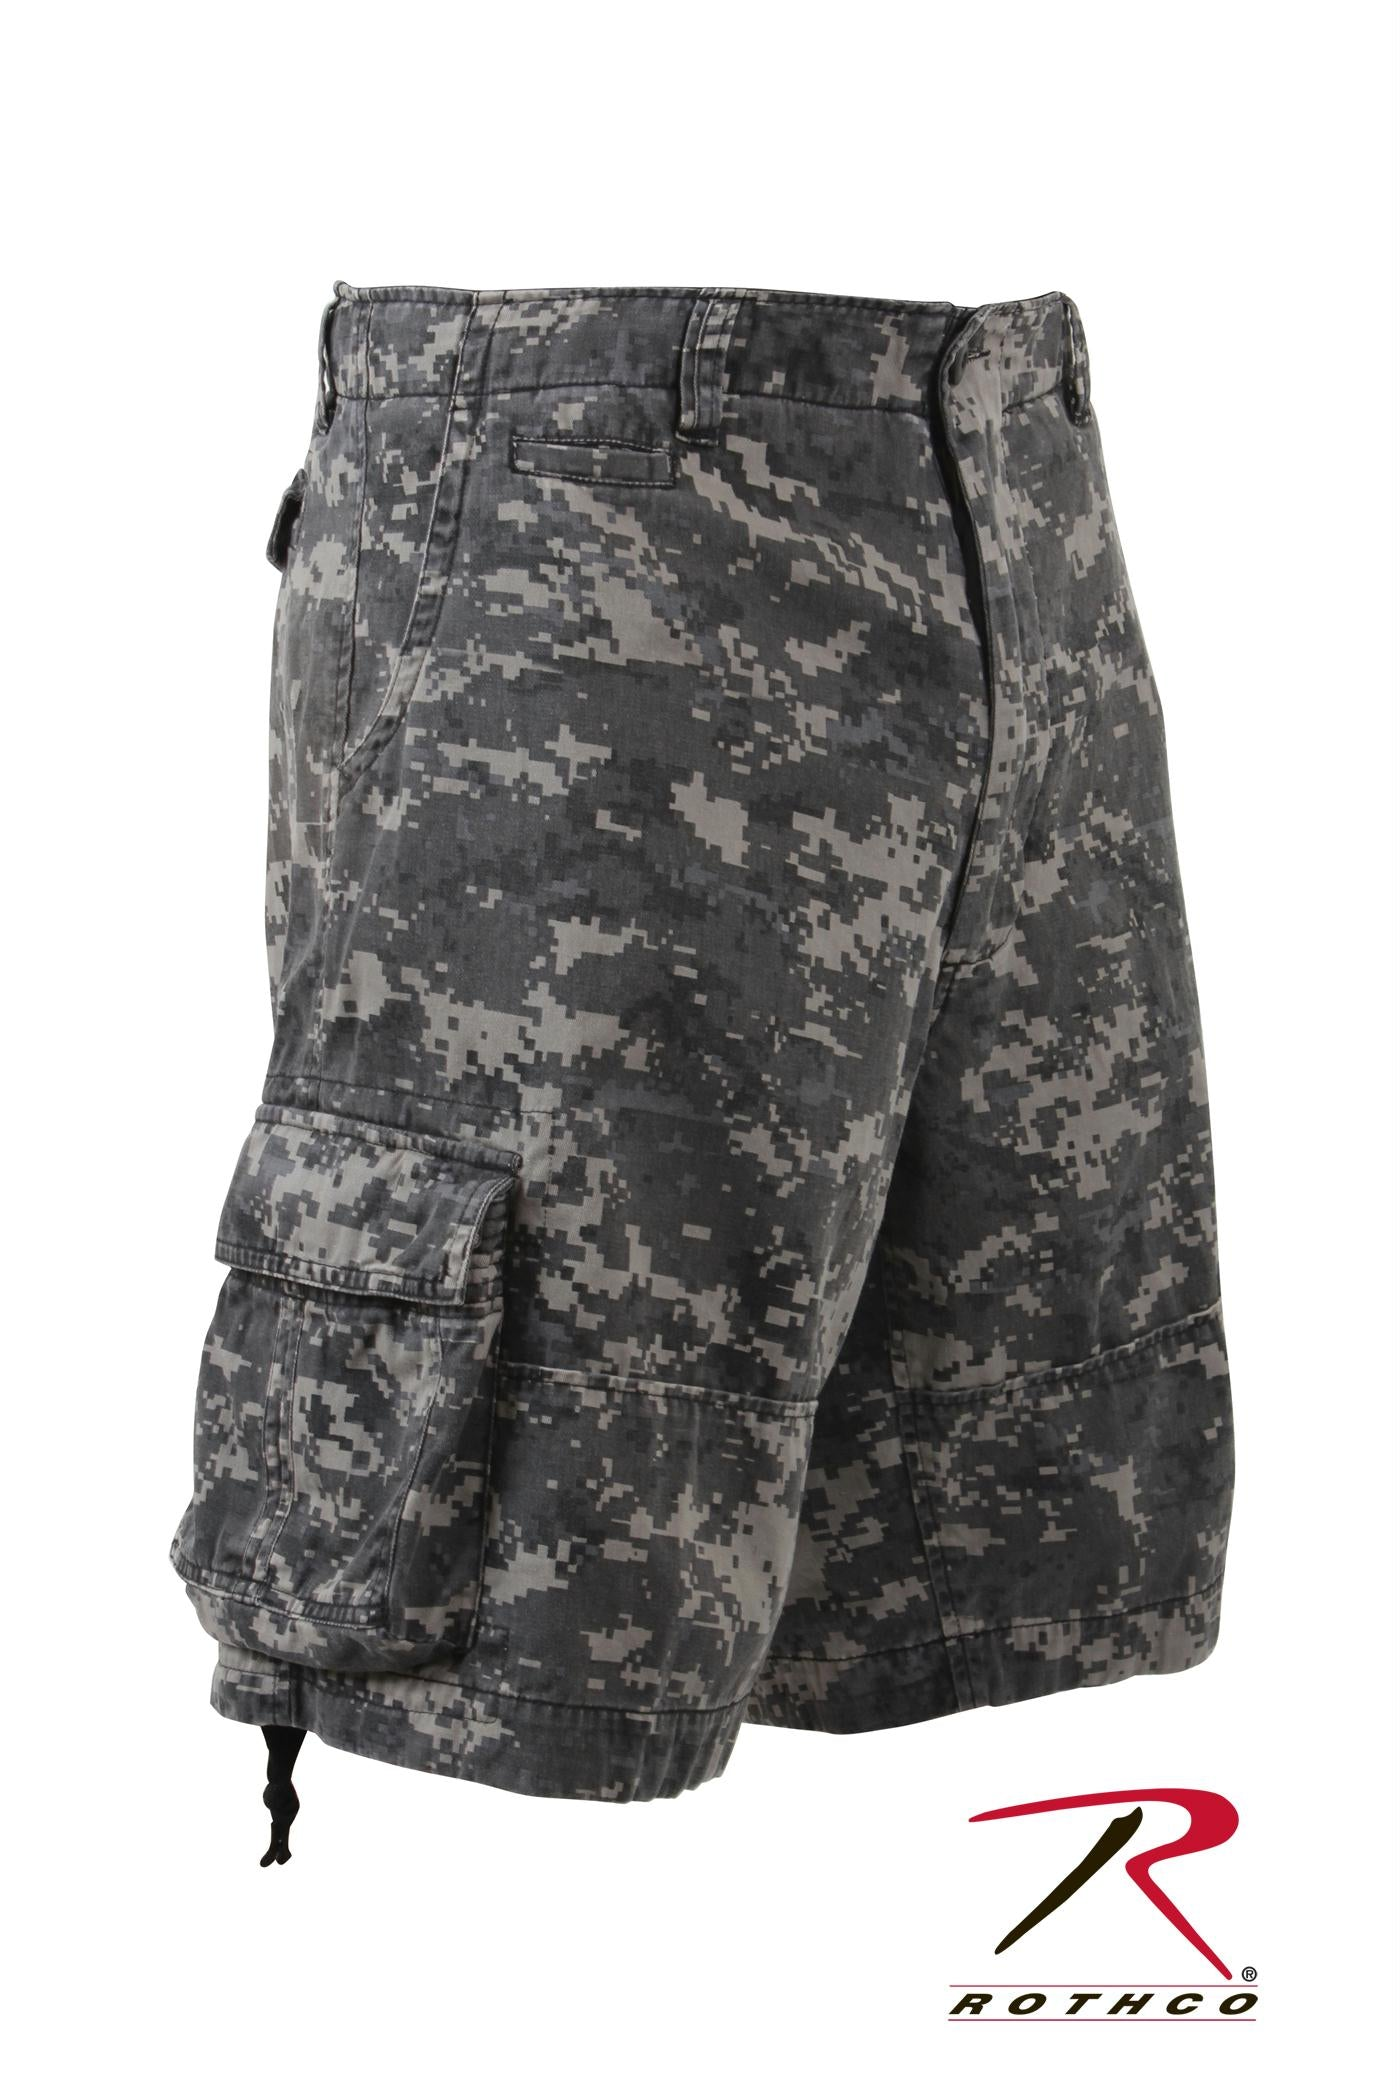 Rothco Vintage Camo Infantry Utility Shorts - Subdued Urban Digital Camo / XS